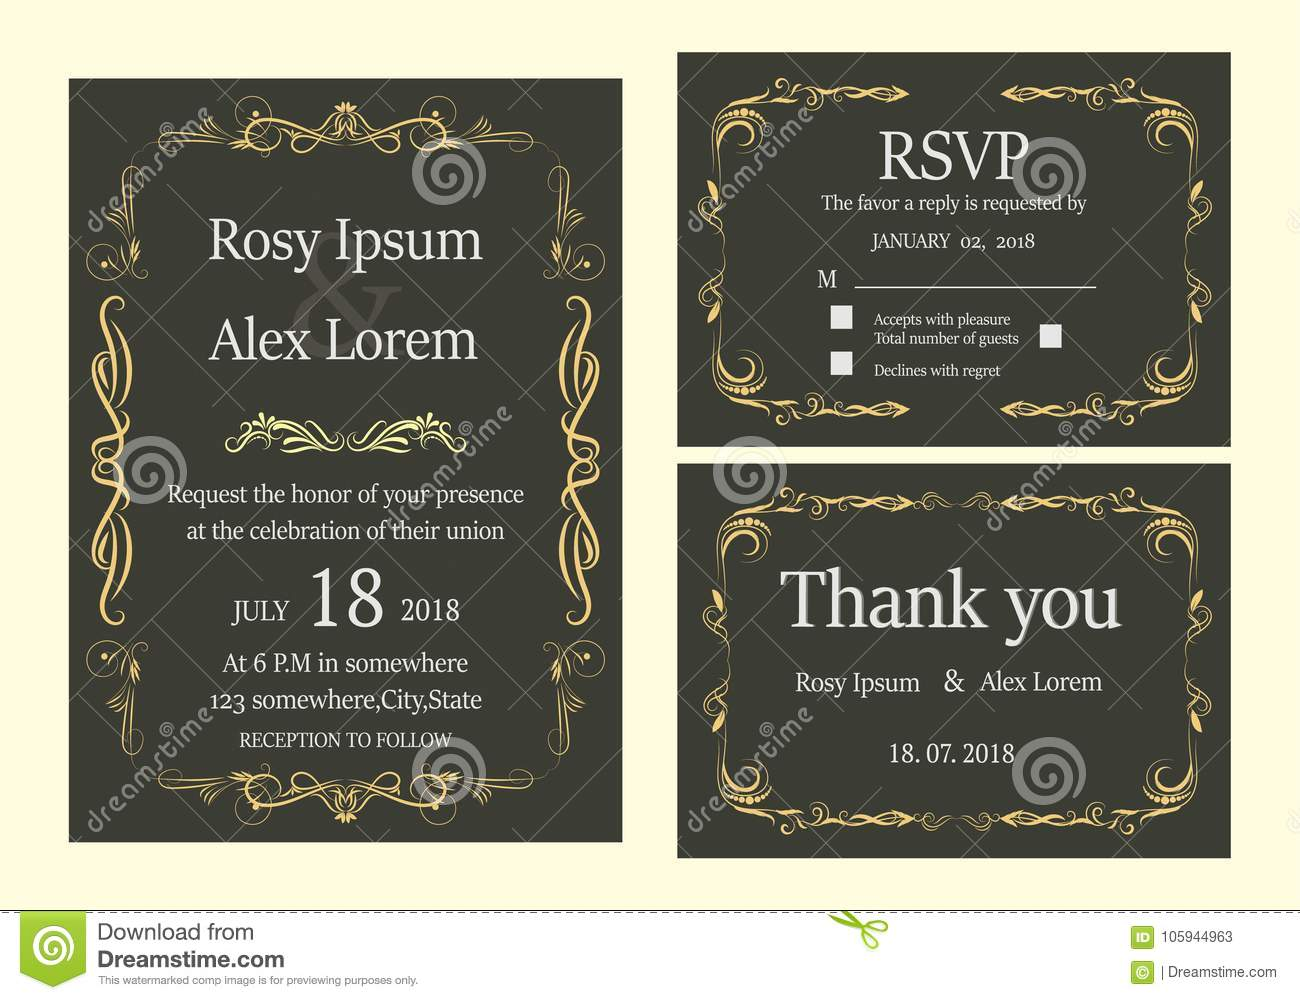 Wedding Invitation , Save The Date, RSVP Card, Thank You Card, T ...